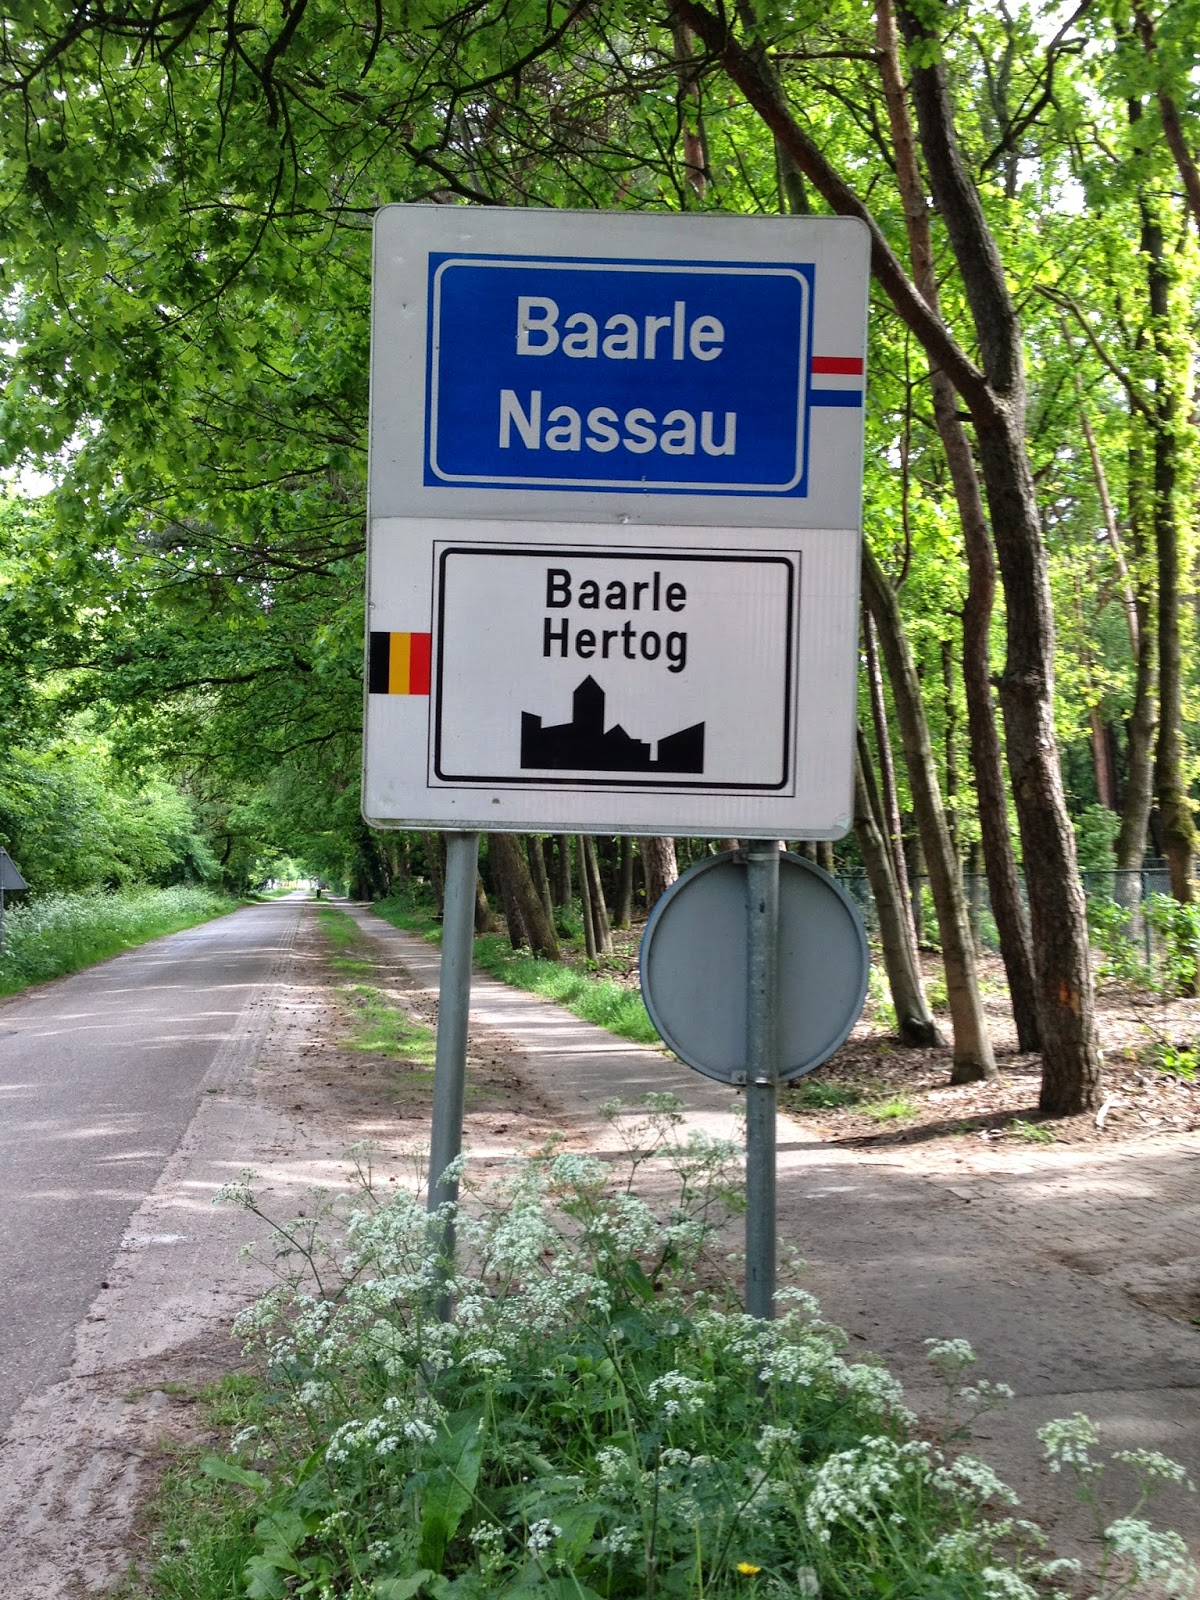 Baarle A Tale of Two Towns